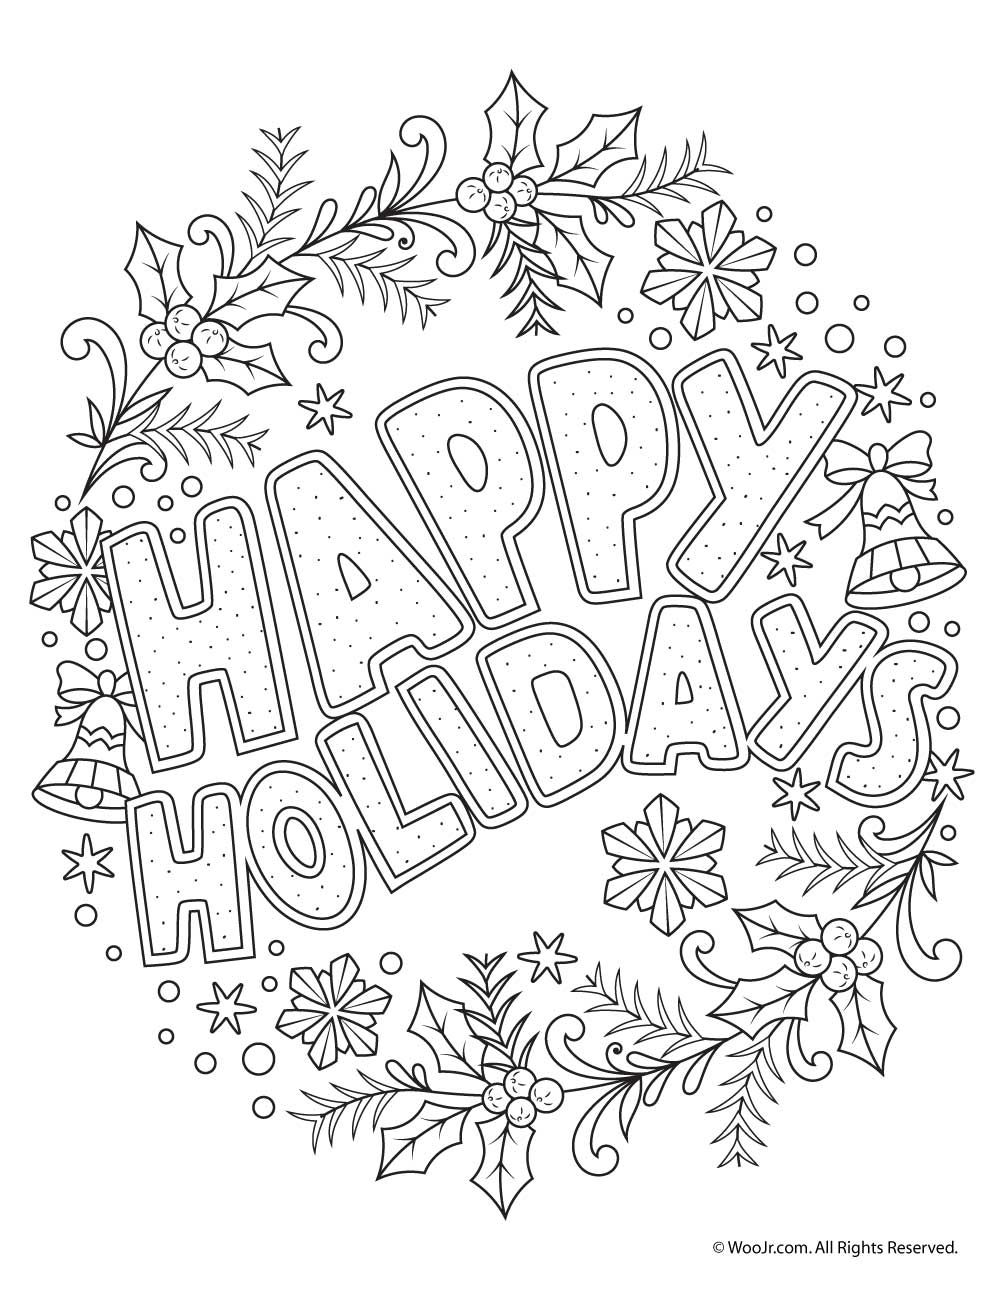 Happy Holidays Adult Coloring Freebie Woo! Jr. Kids